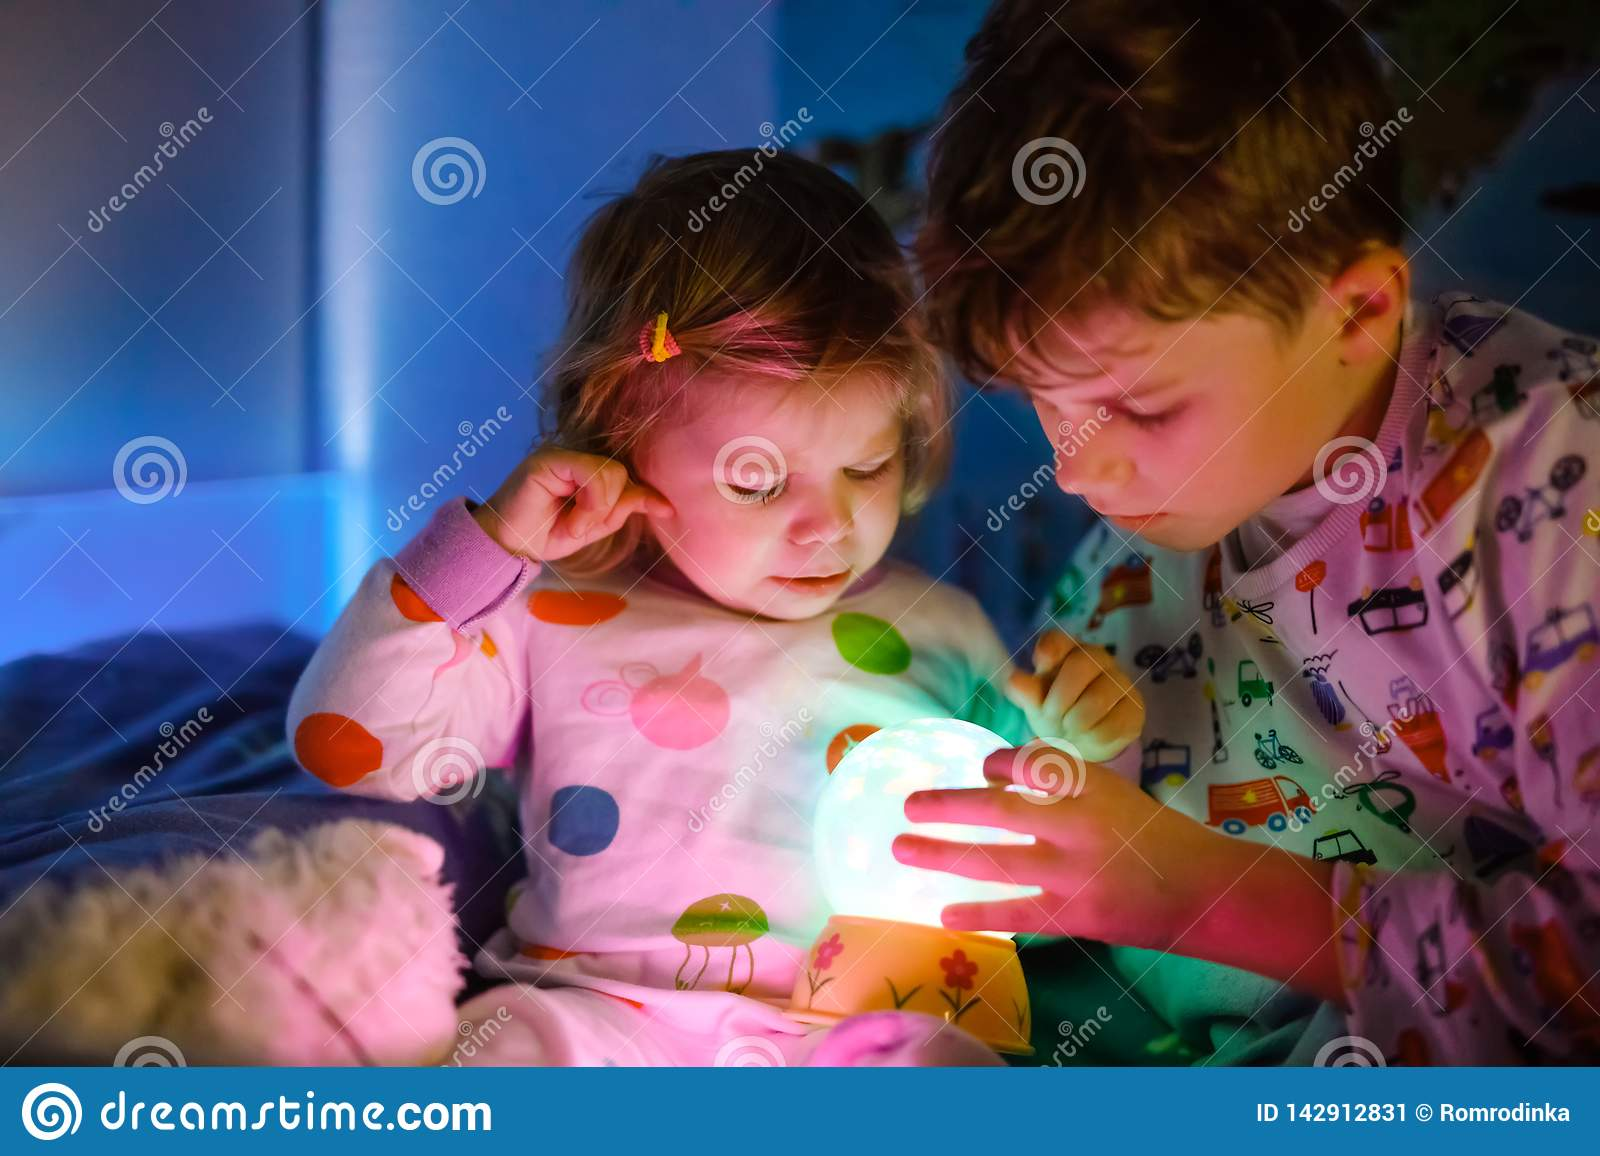 Cute little toddler girl and kid boy playing with colorful night light lamp before going to bed. Sleepy tired baby